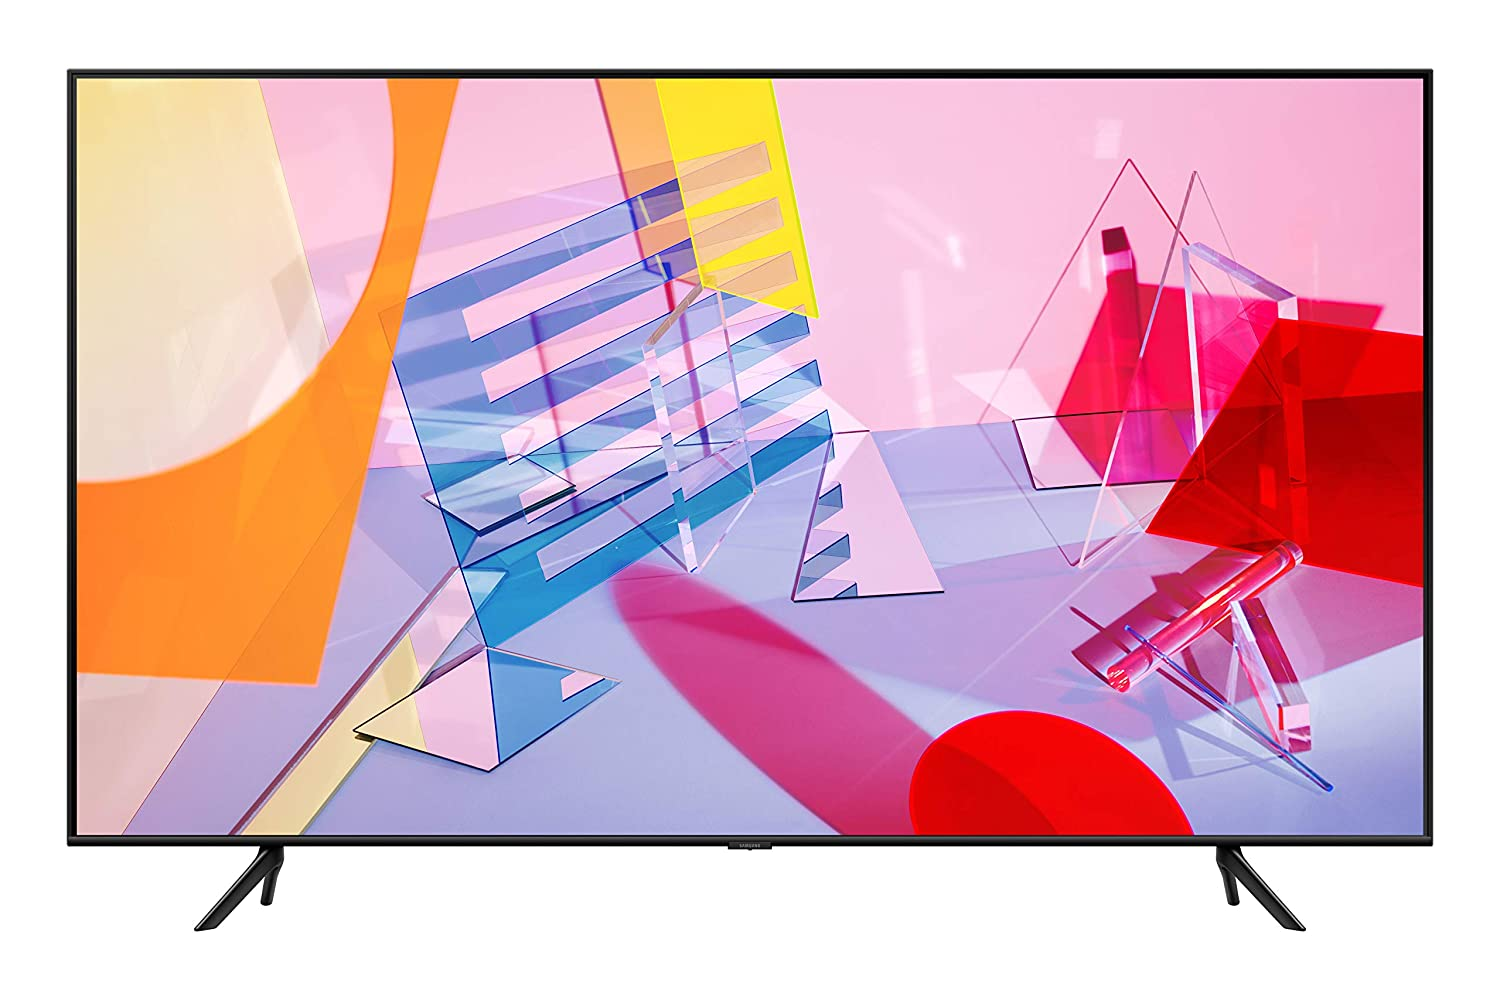 QLED vs OLED-Which one should you buy in 2021